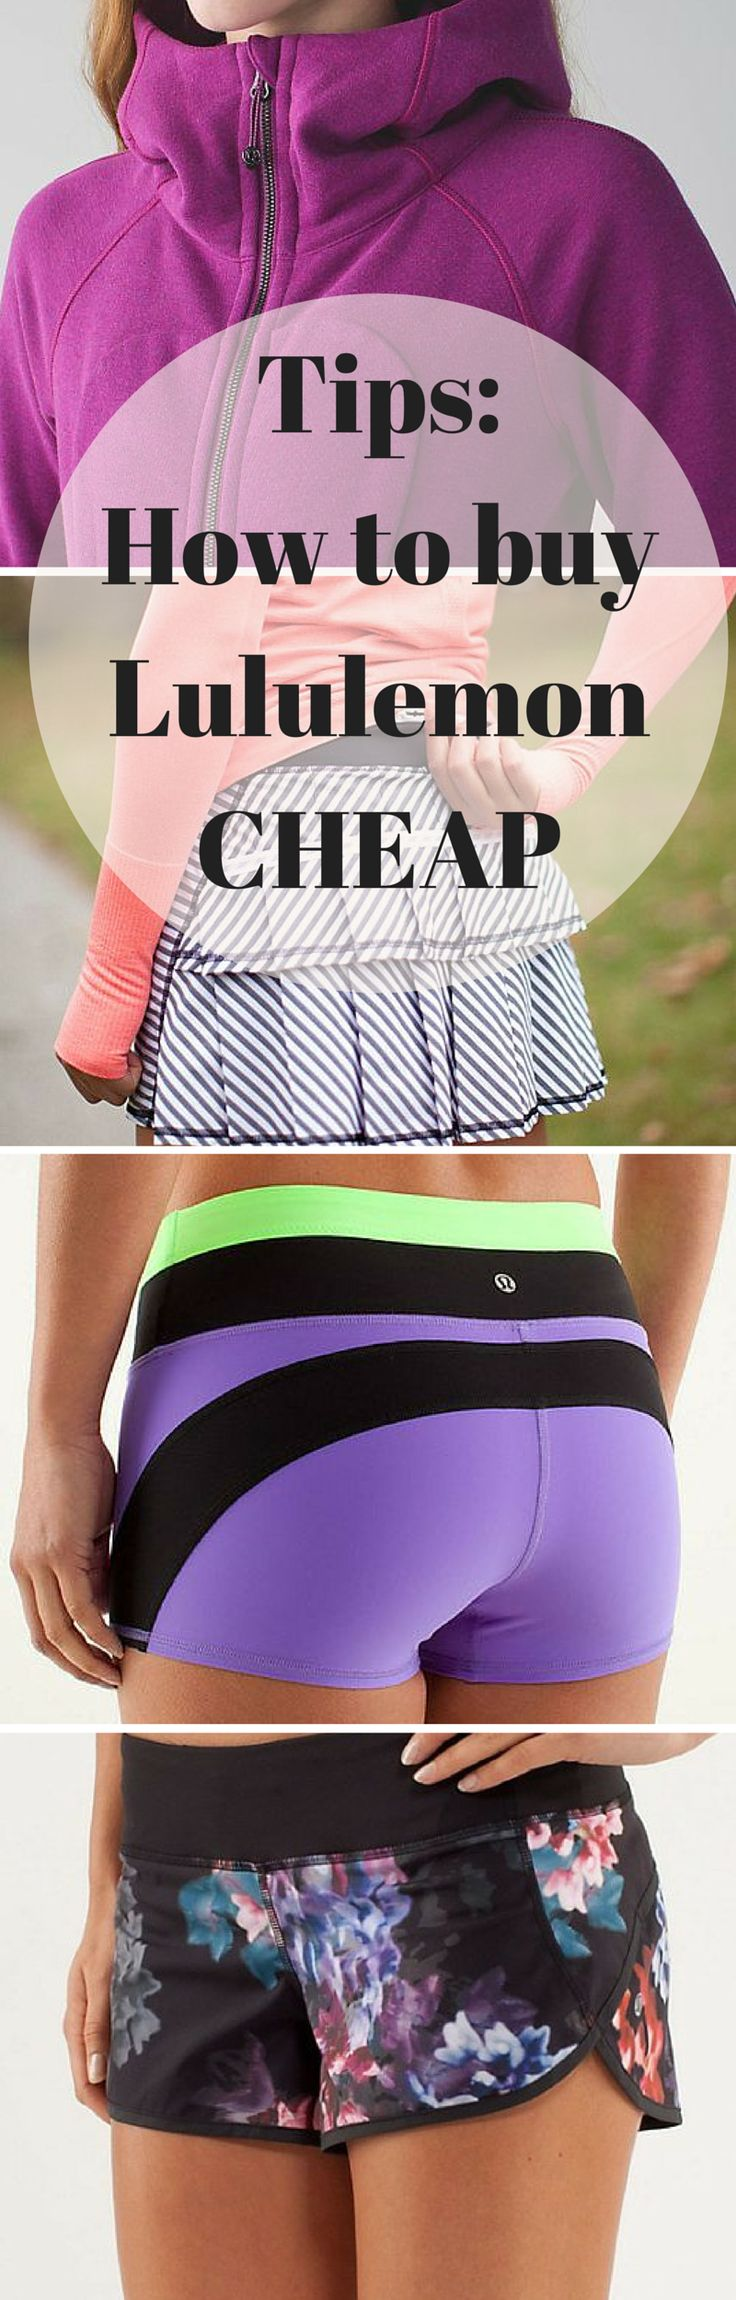 Lululemon Sale HAPPENING NOW! Buy all workout clothes at up to 70% off retail prices! Click image to install the free Poshmark app now.